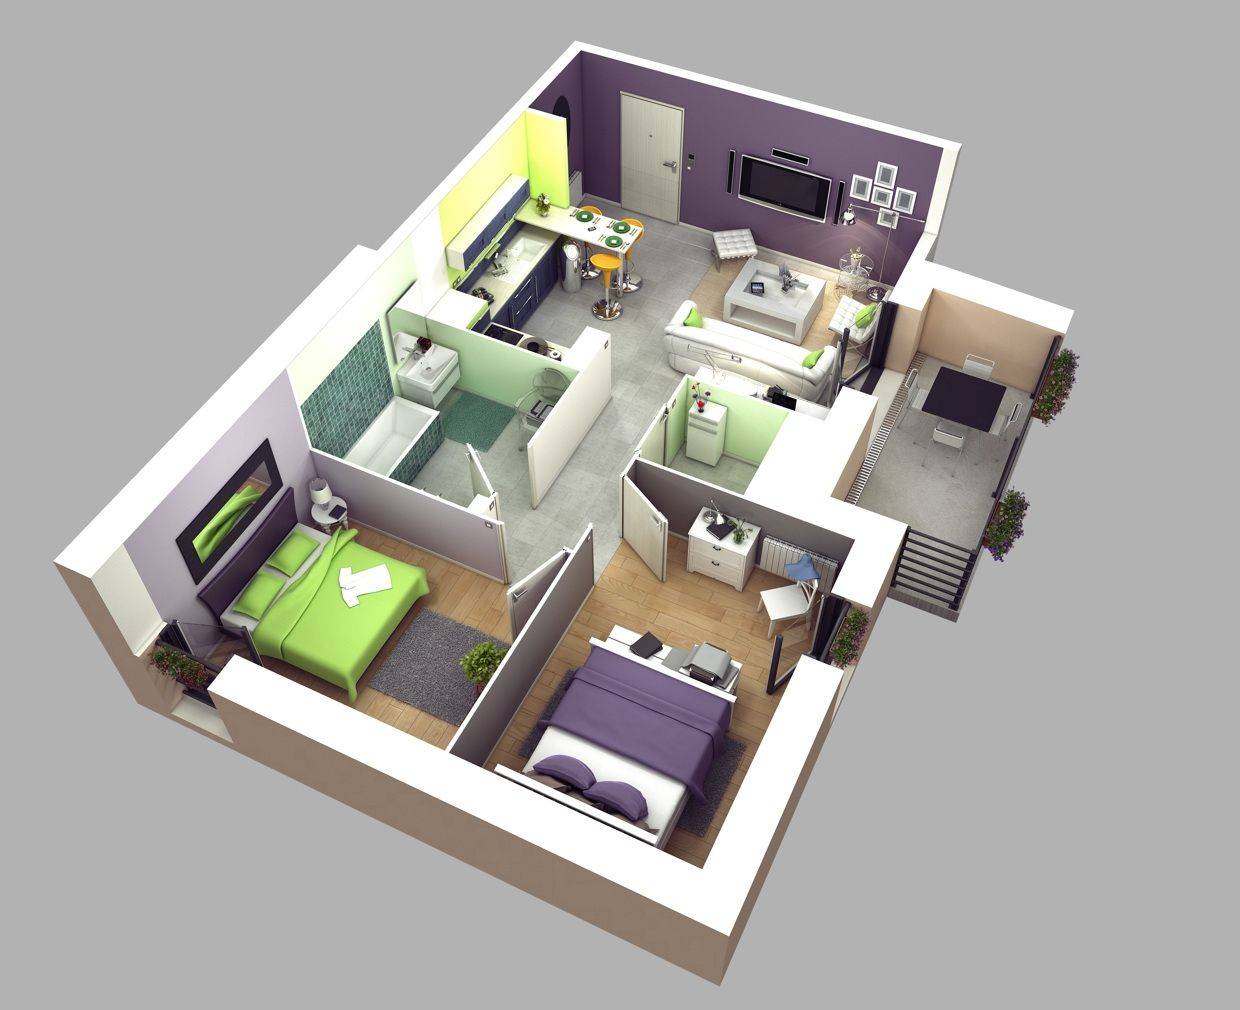 50 two 2 bedroom apartmenthouse plans - Home Bedroom Design 2